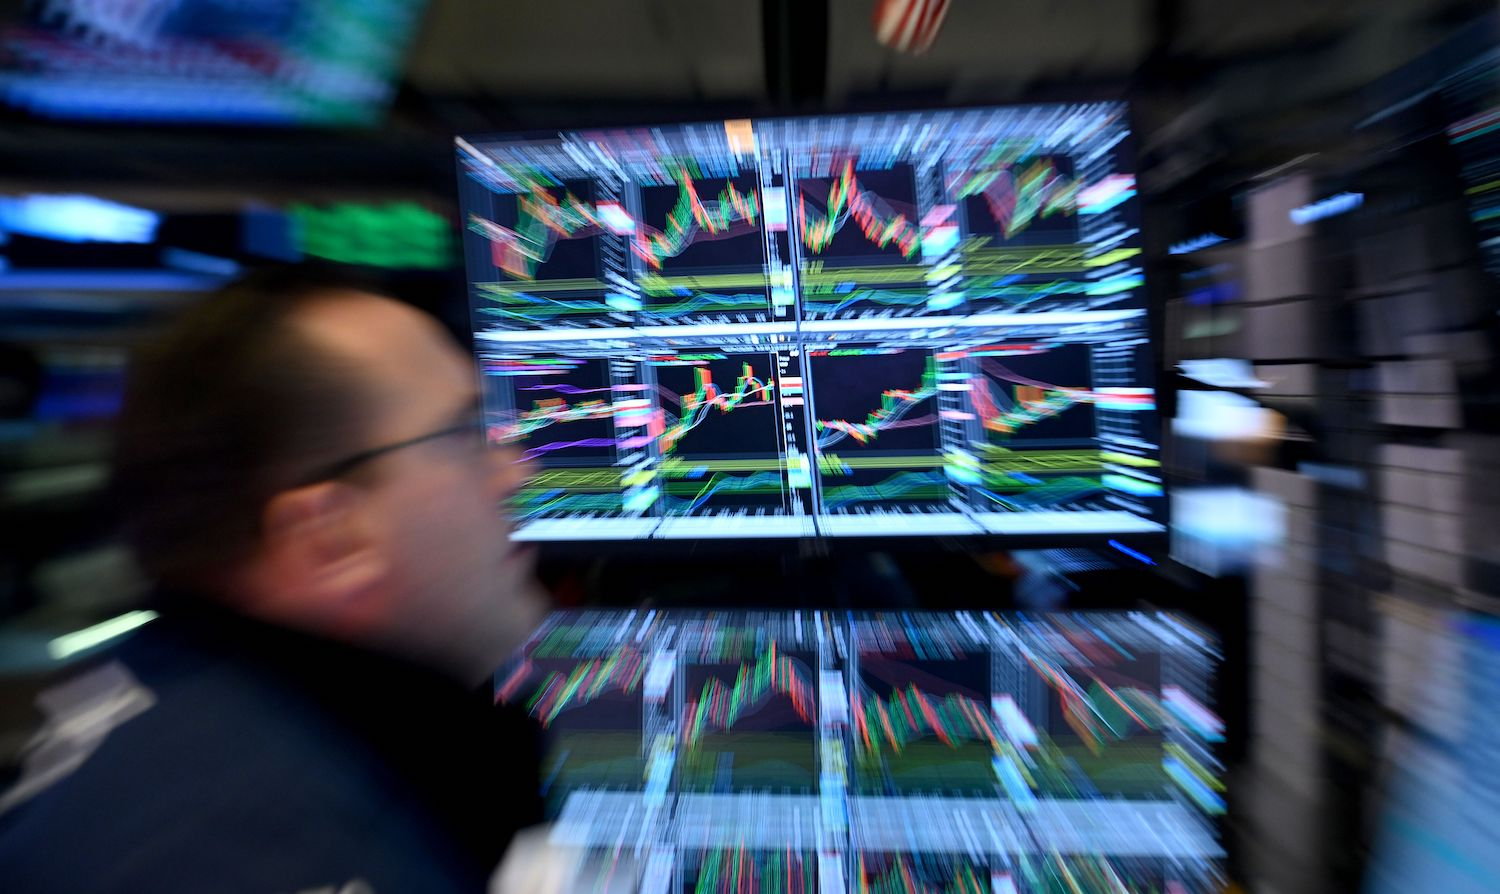 A trader walks past a screen during the closing bell at the New York Stock Exchange (NYSE) on March 17, 2020 at Wall Street in New York City. - Wall Street stocks rallied Tuesday on expectations for massive federal stimulus to address the economic hit from the coronavirus, partially recovering some of their losses from the prior session. (Photo by Johannes EISELE / AFP) (Photo by JOHANNES EISELE/AFP via Getty Images)